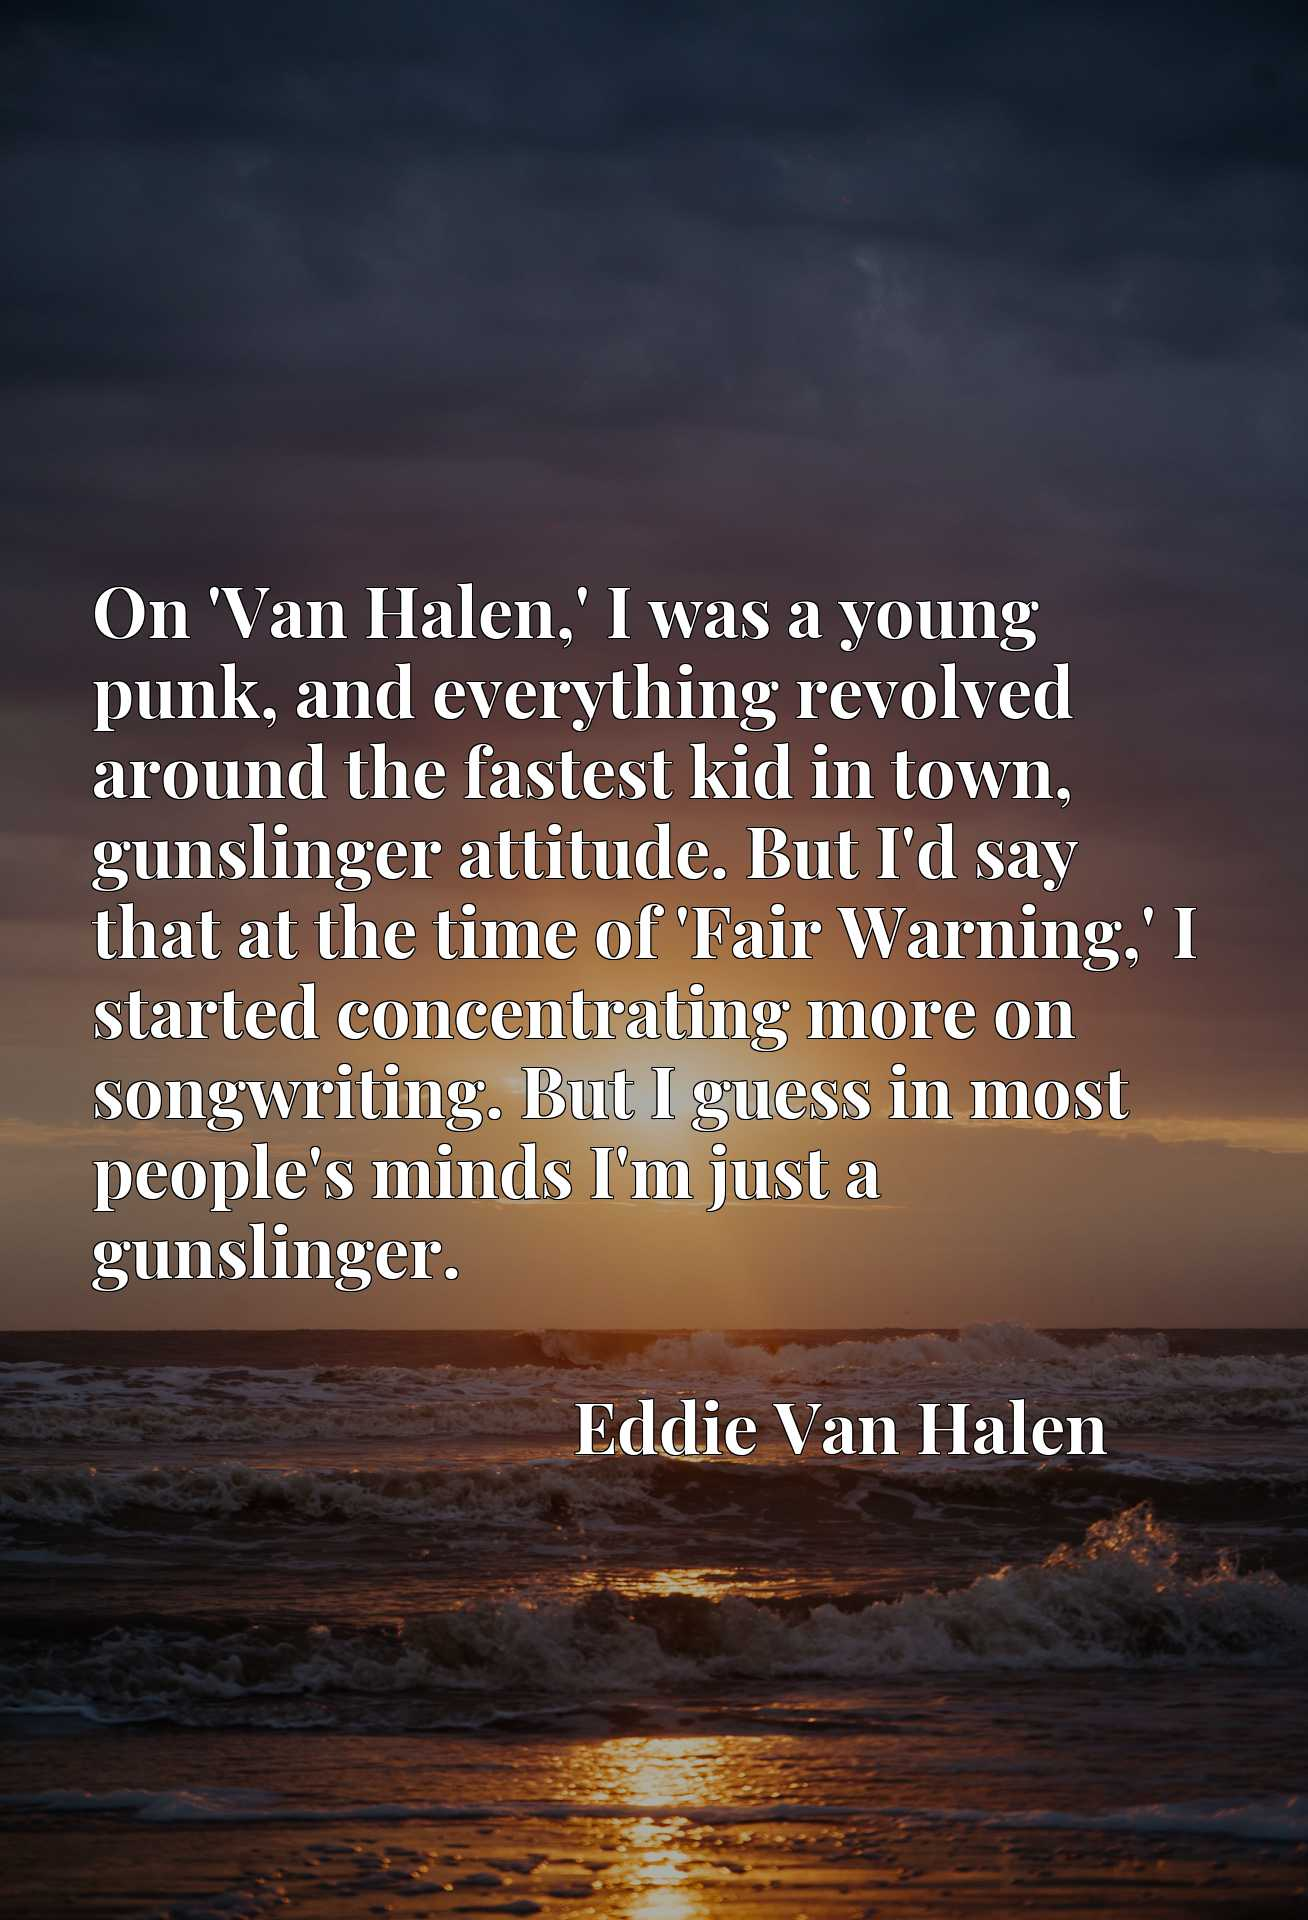 On 'Van Halen,' I was a young punk, and everything revolved around the fastest kid in town, gunslinger attitude. But I'd say that at the time of 'Fair Warning,' I started concentrating more on songwriting. But I guess in most people's minds I'm just a gunslinger.